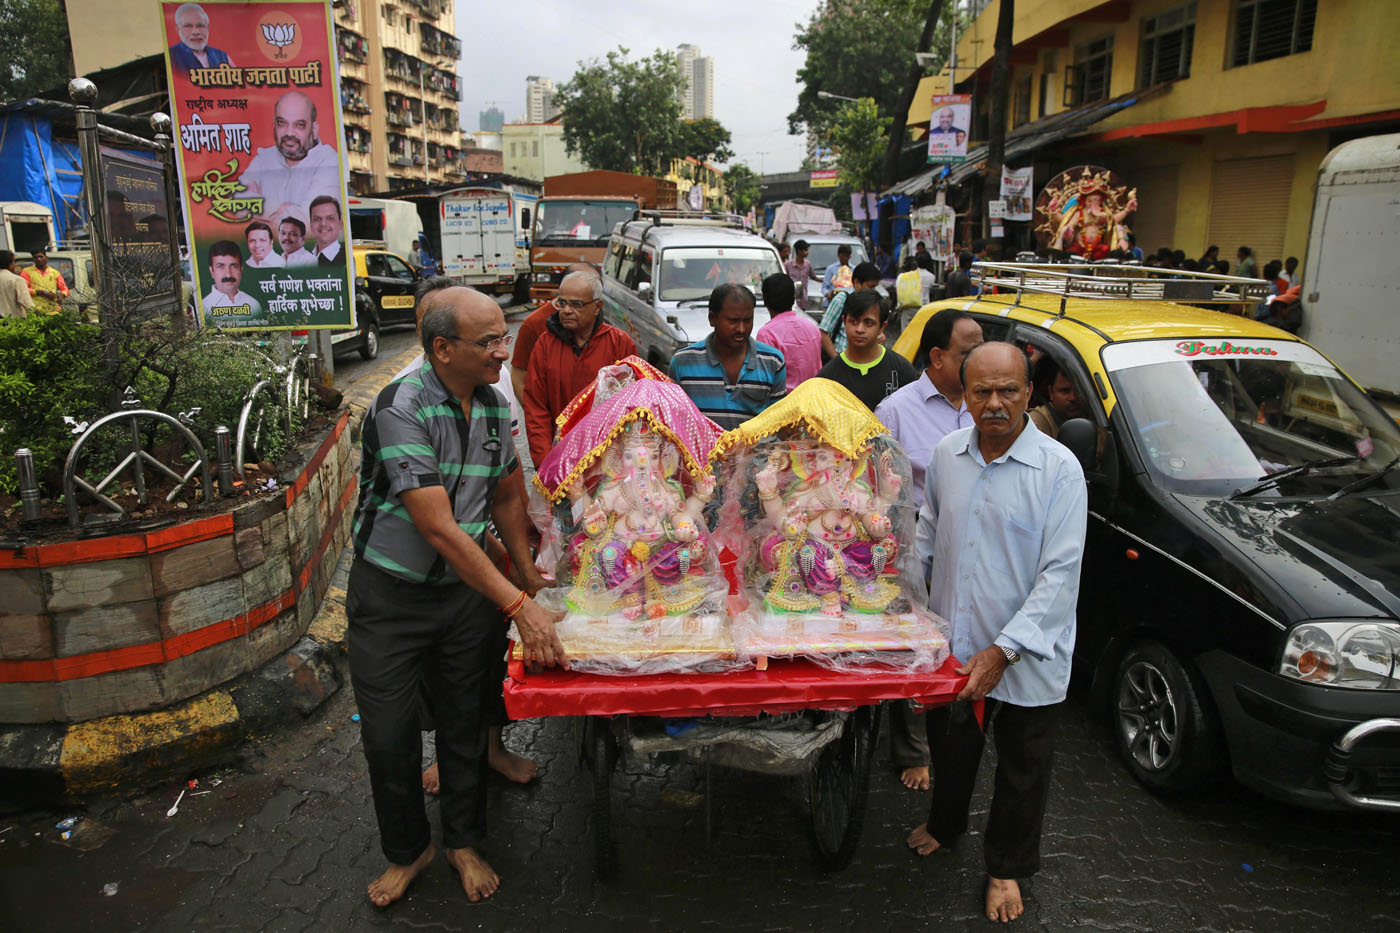 s ganesh chaturthi festival a handcart during ganesha chaturthi festival in mumbai thursday sept 17 2015 ganesh chaturthi is celebrated as the birthday of lord ganesha